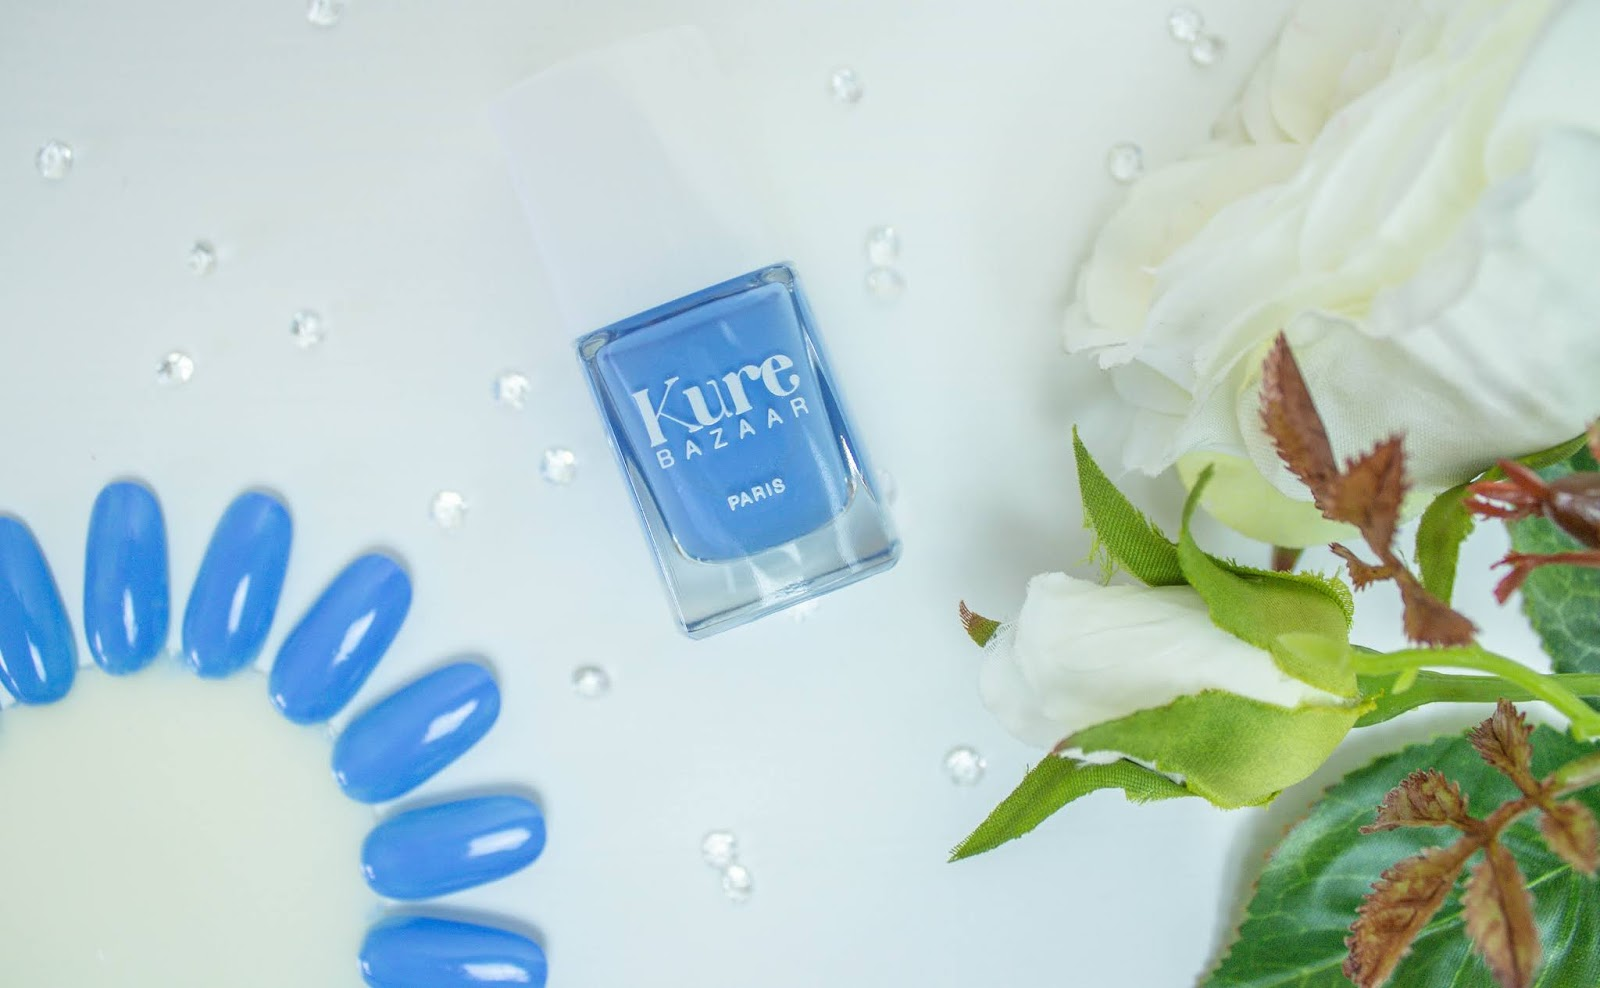 The Prettiest Summer Nail Varnish Colours from Kure Bazaar - Sereno